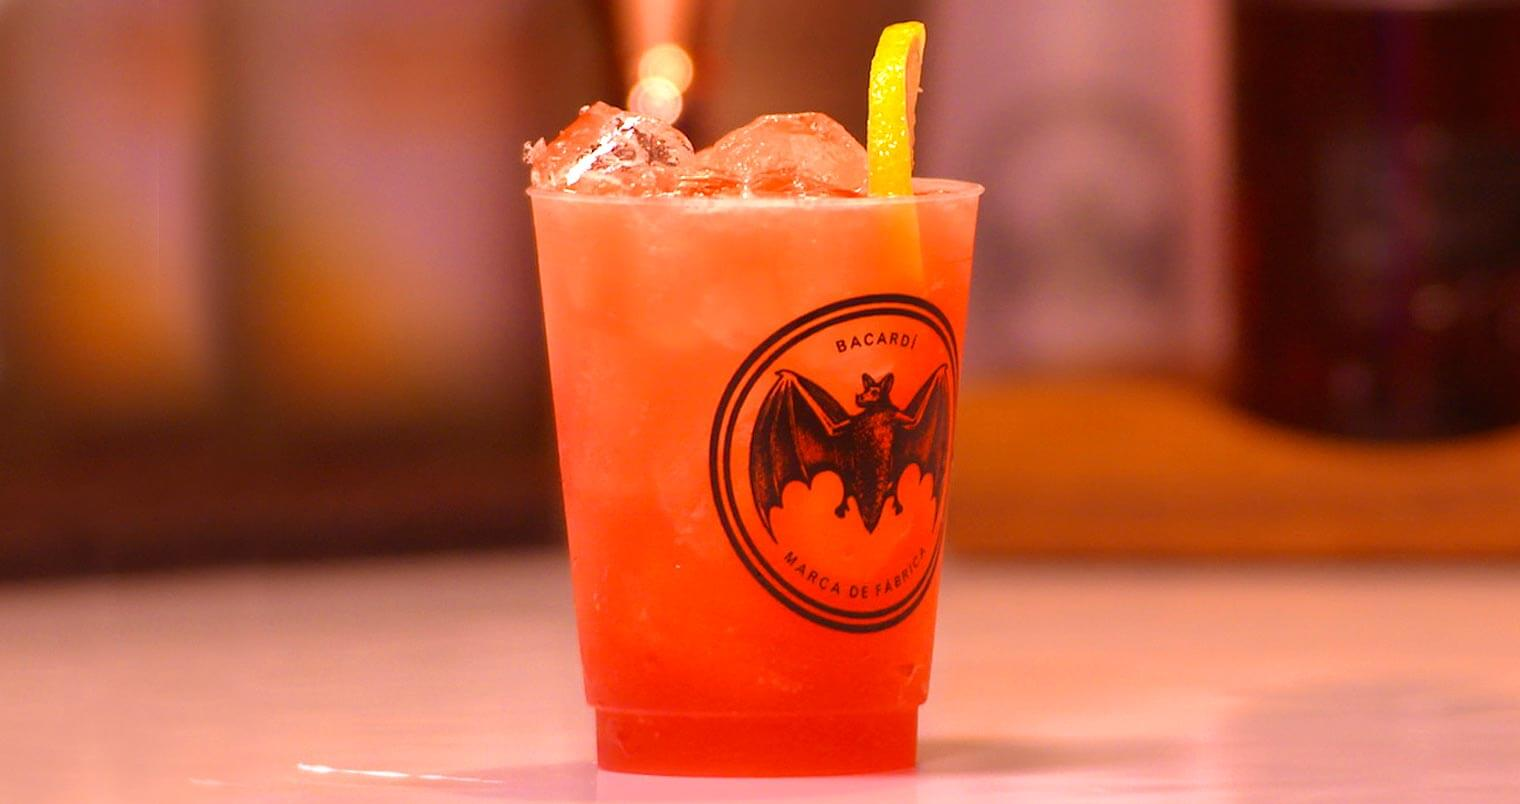 Chilled Drink of the Week: Bacardi Rum Punch